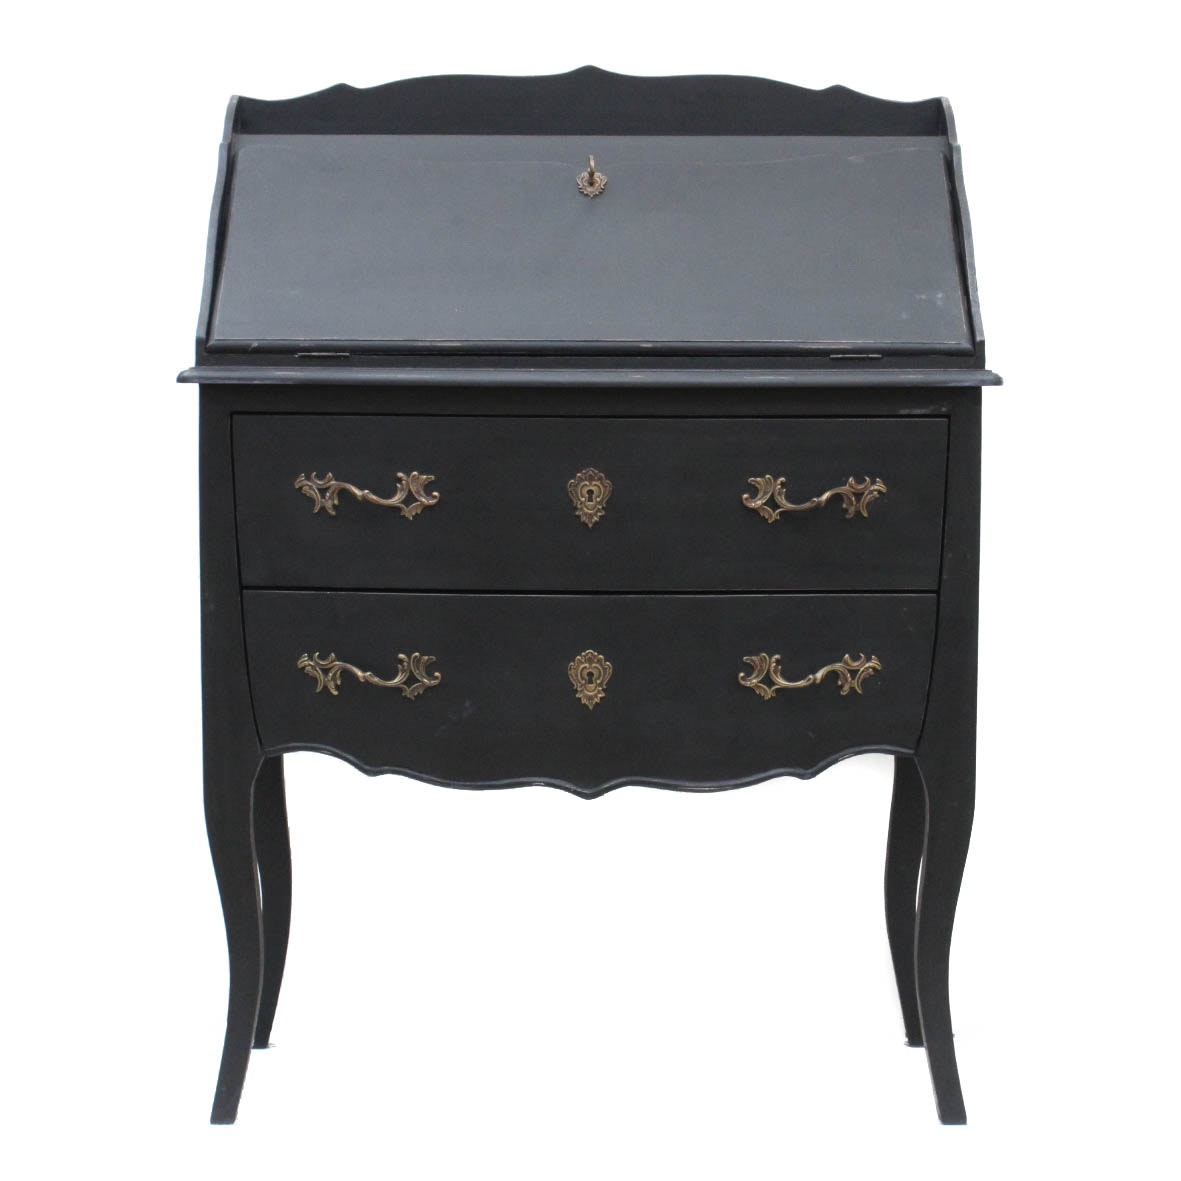 Painted Wooden Chest with Drop Front Desk